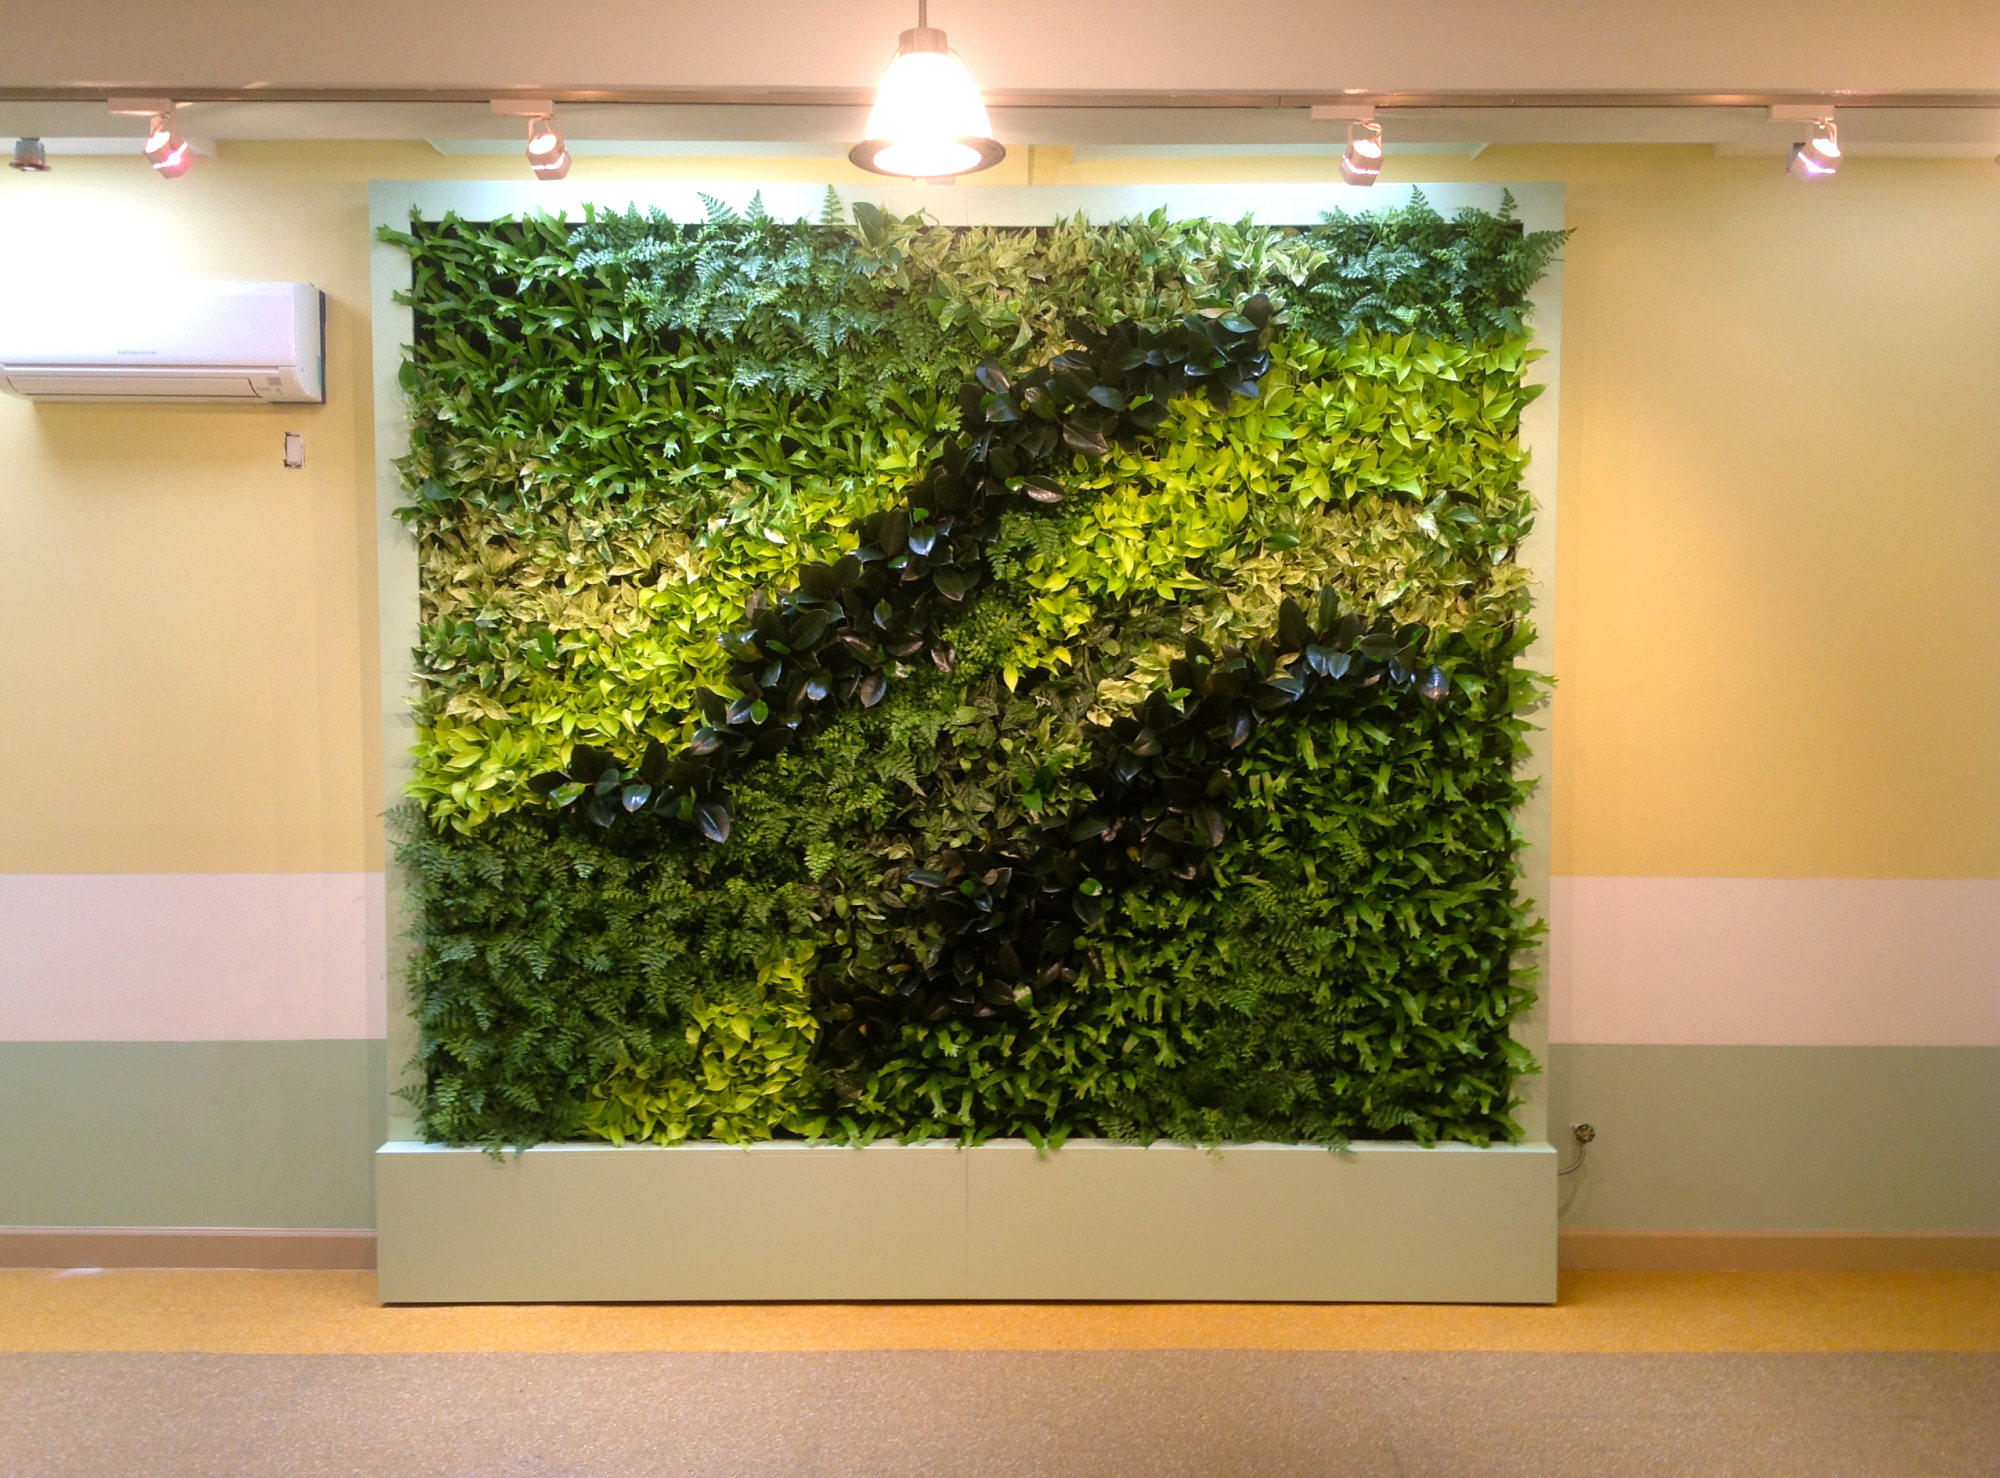 New brooklyn preschool of science gets the green wall Green walls vertical planting systems